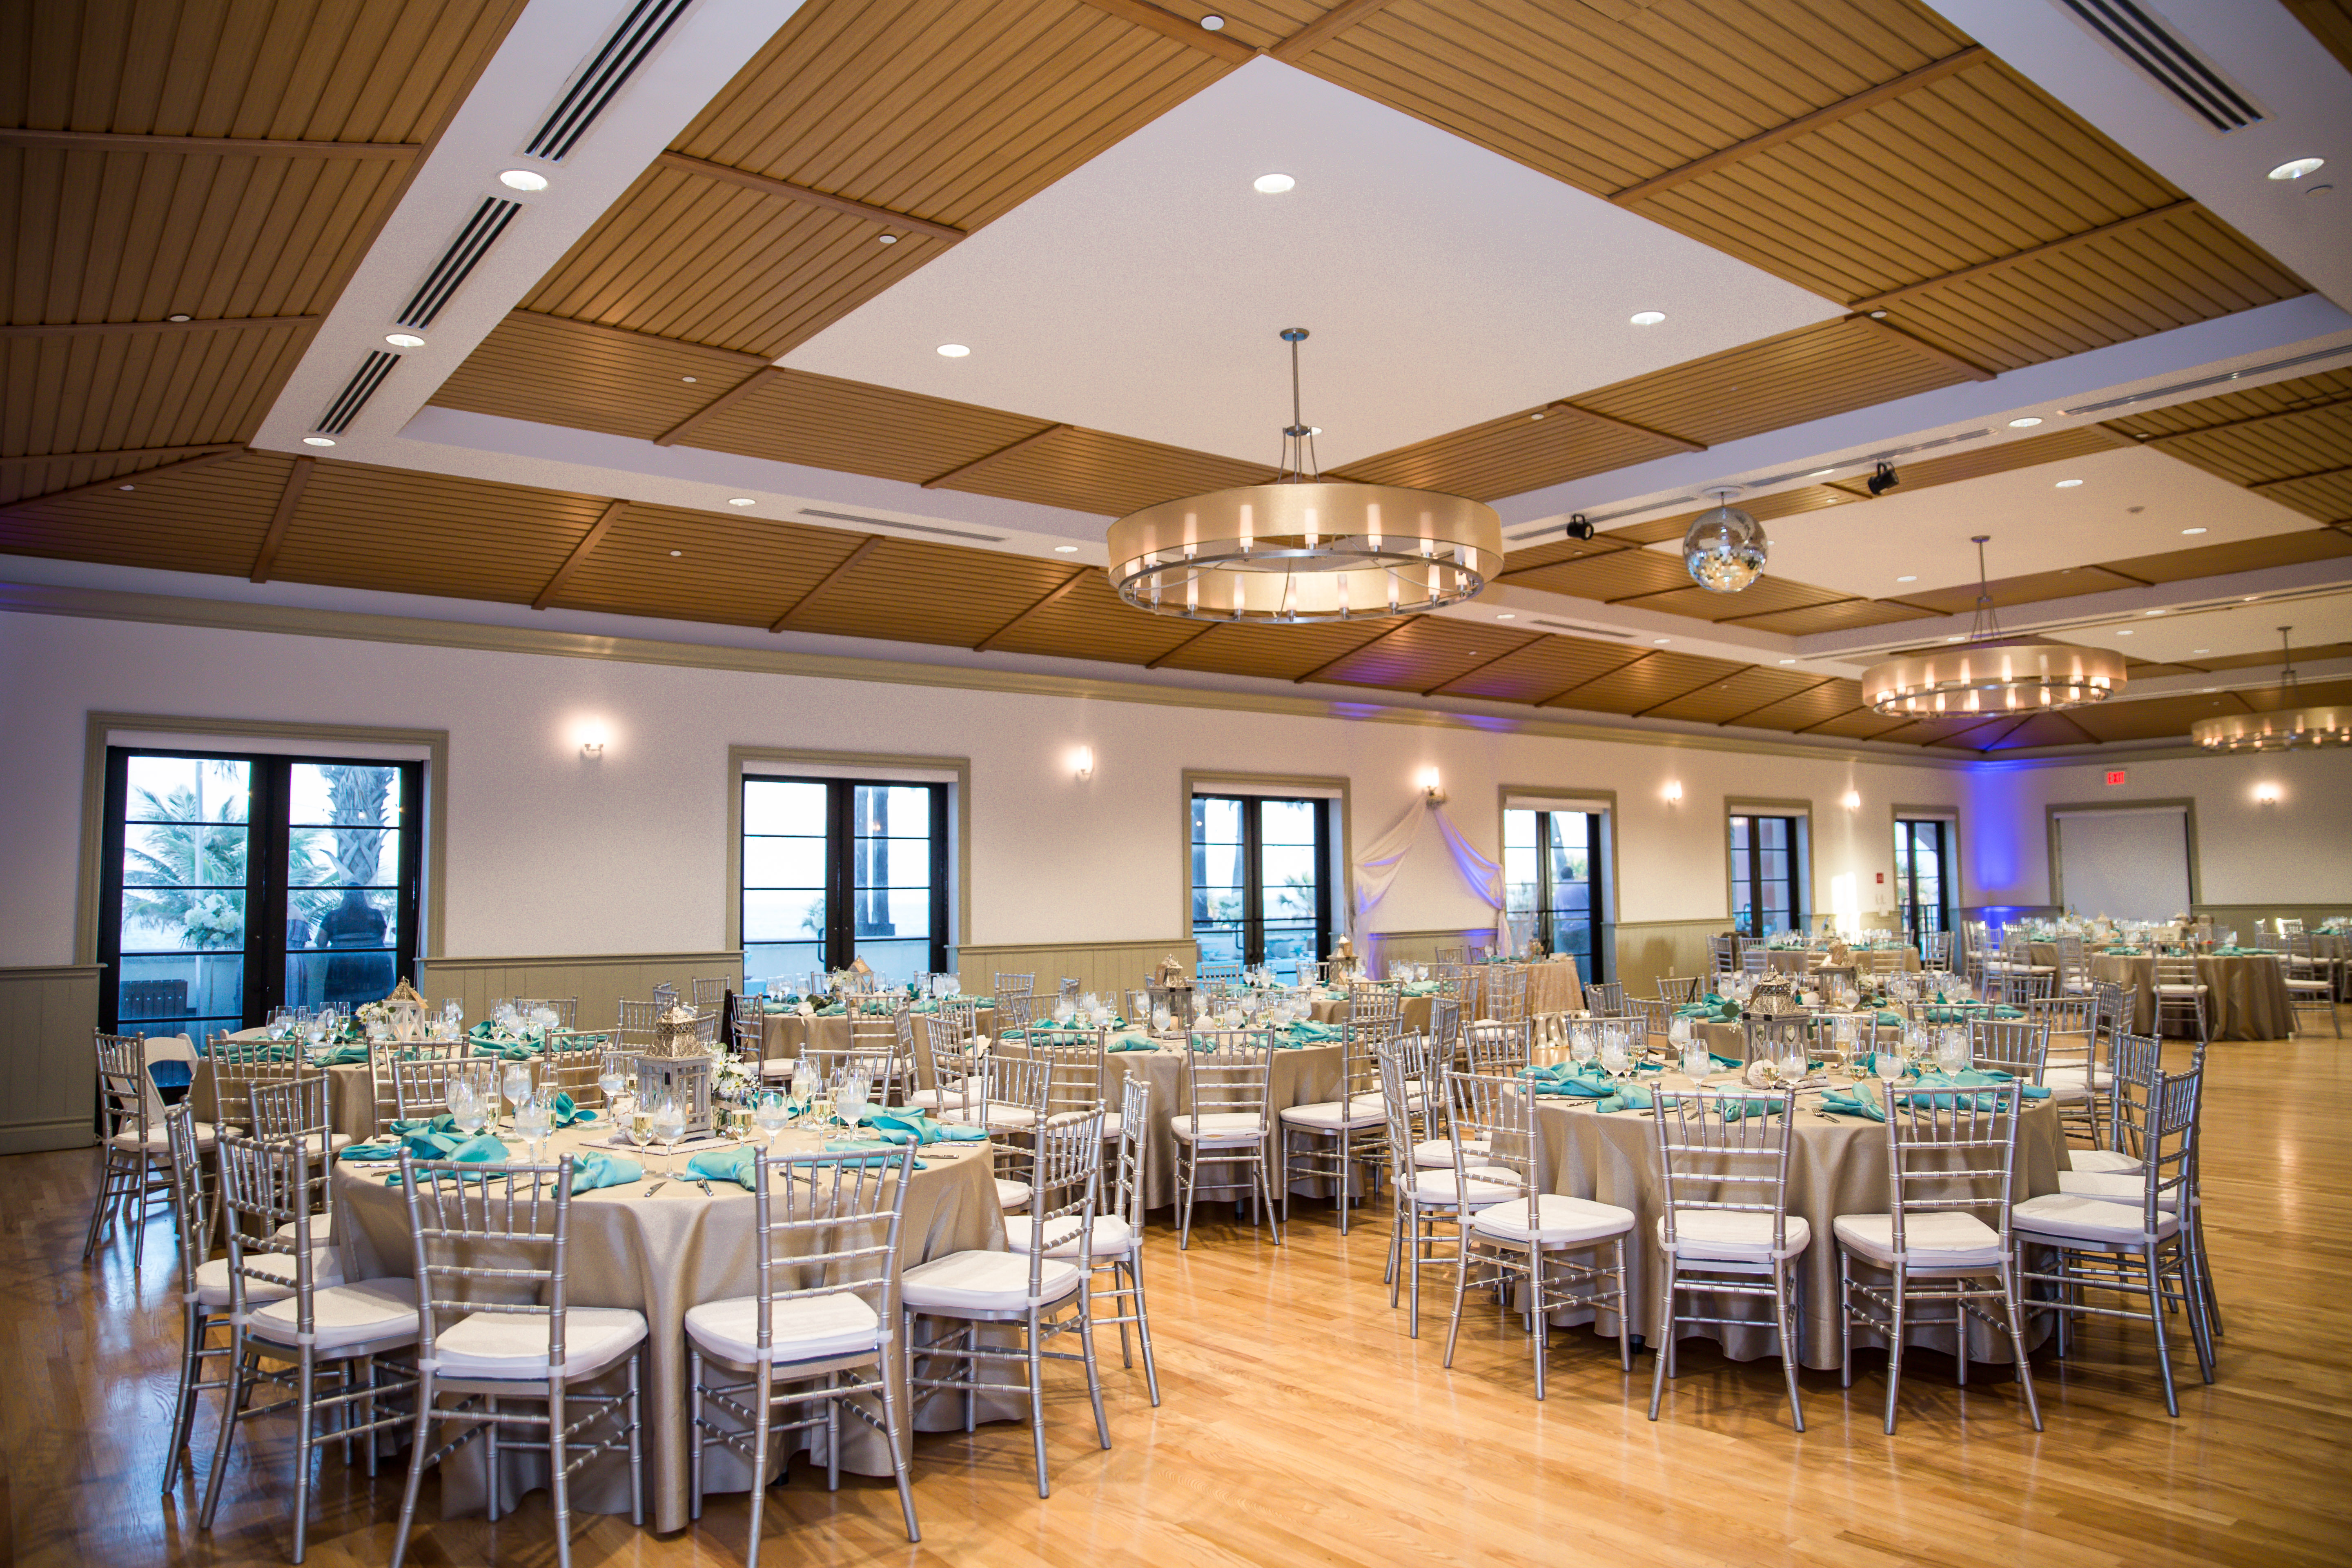 decanto-wedding-lake-worth-casino-ballroom-coastal-click-photography-3192